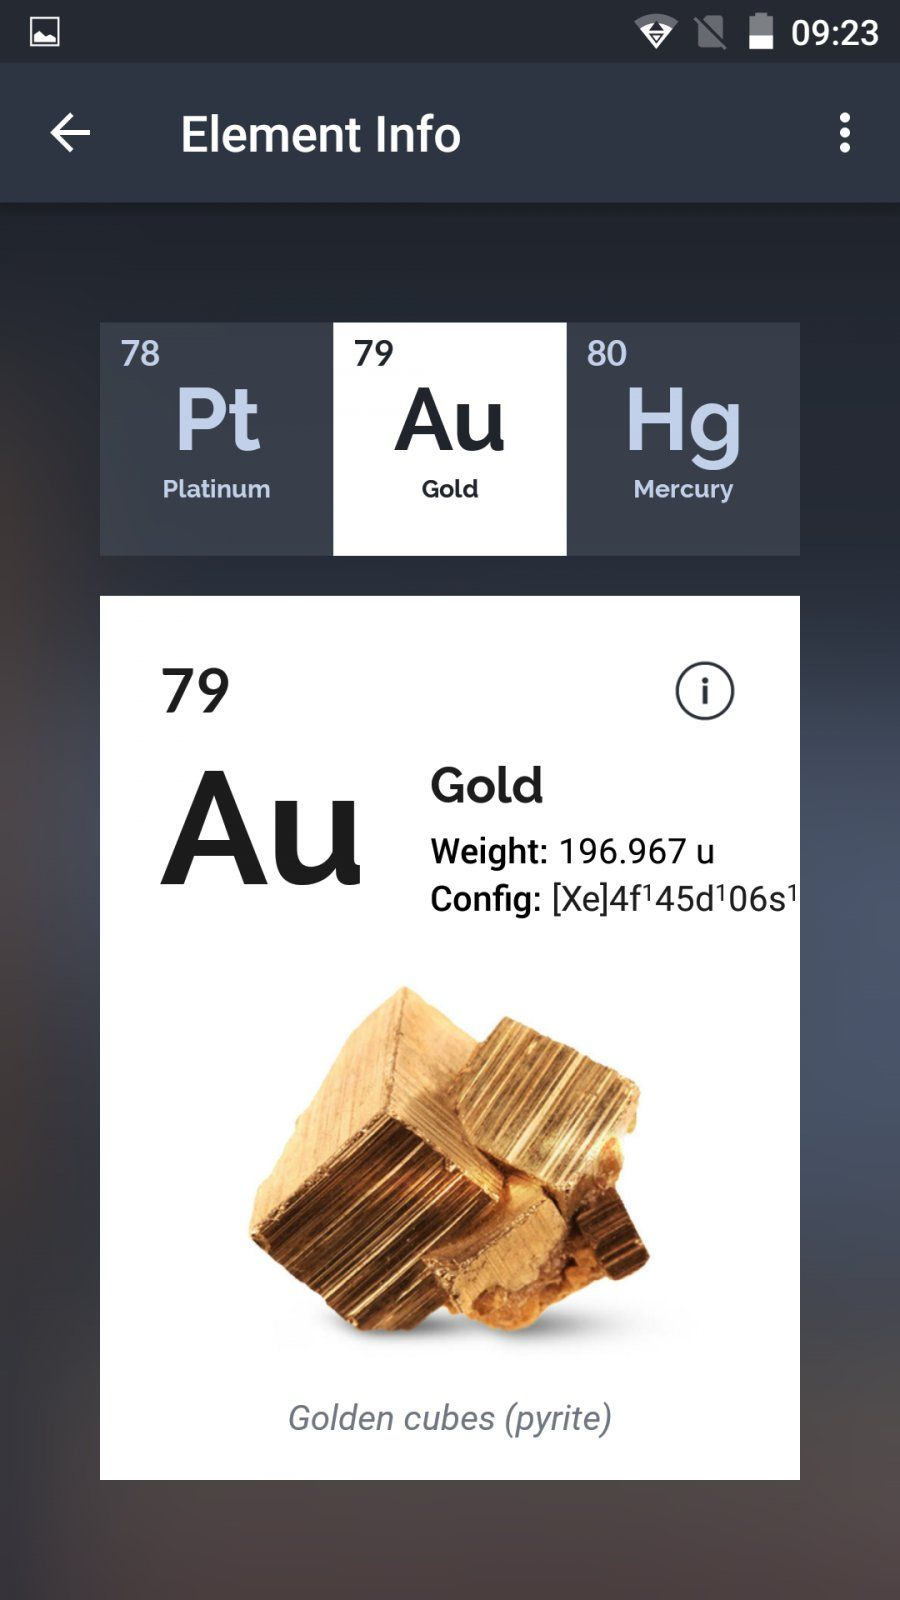 Requirements 23 overview isotope periodic table application requirements 23 overview isotope periodic table application download app apk android online from free apk downloader apk installer select urtaz Images